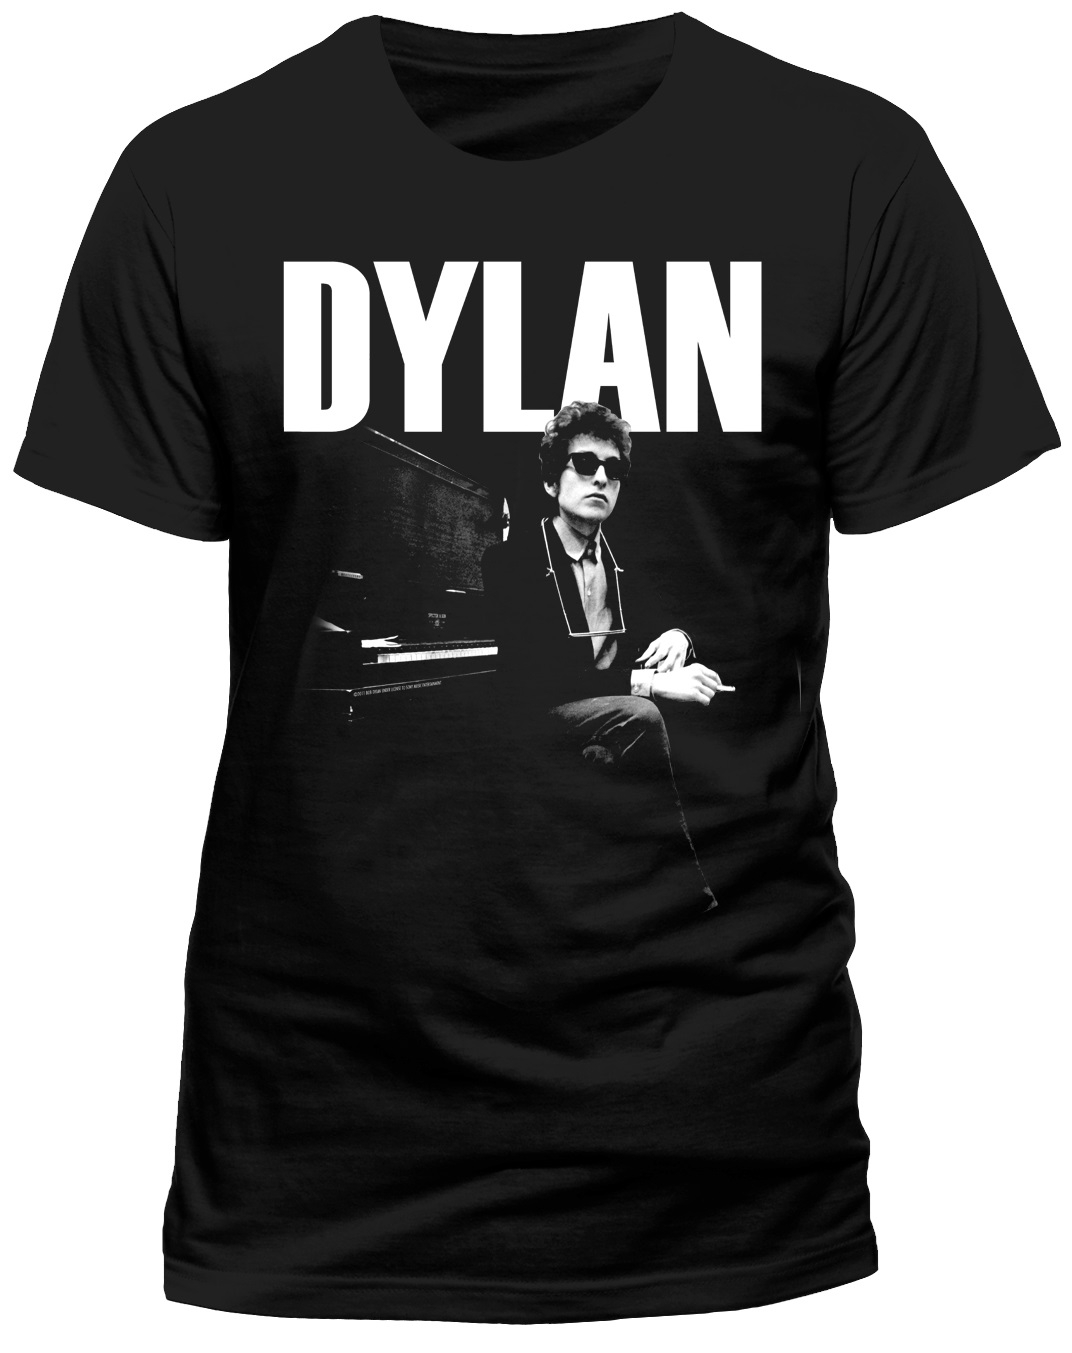 bob the blob coloring pages | Bob Dylan 'Piano' T-Shirt - NEW & OFFICIAL | eBay